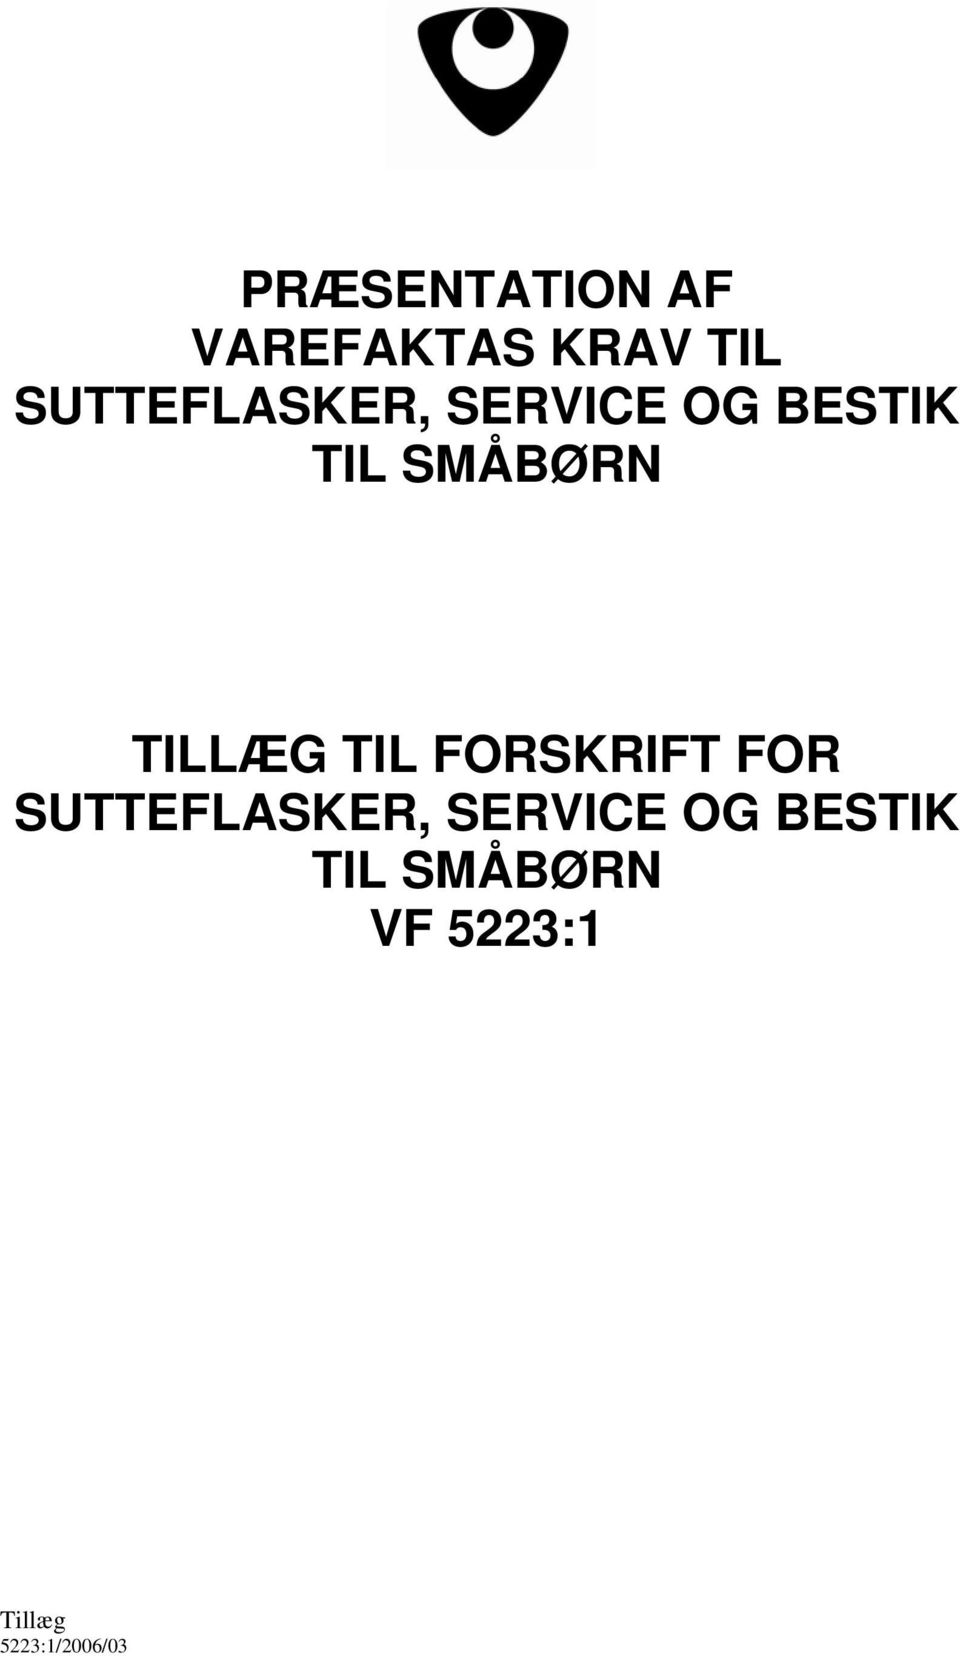 SMÅBØRN TILLÆG TIL FORSKRIFT FOR